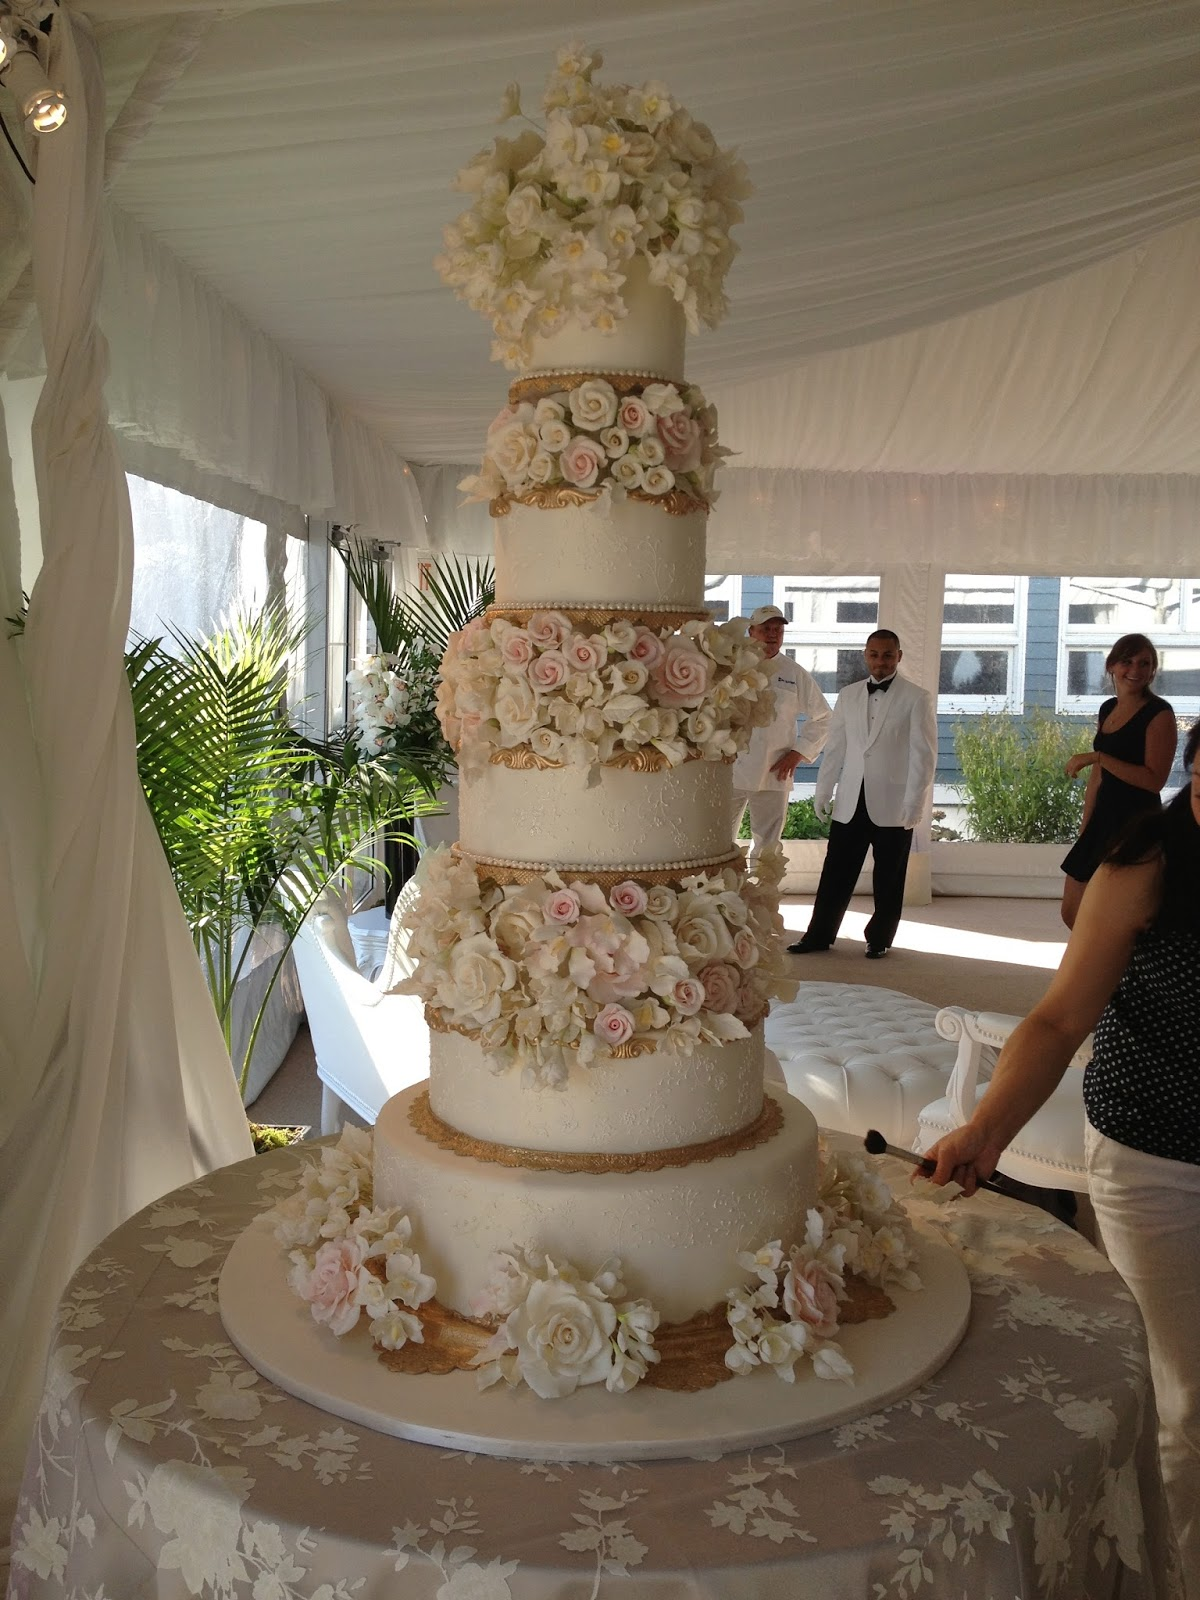 For The Love Of Cake! By Garry & Ana Parzych: Custom